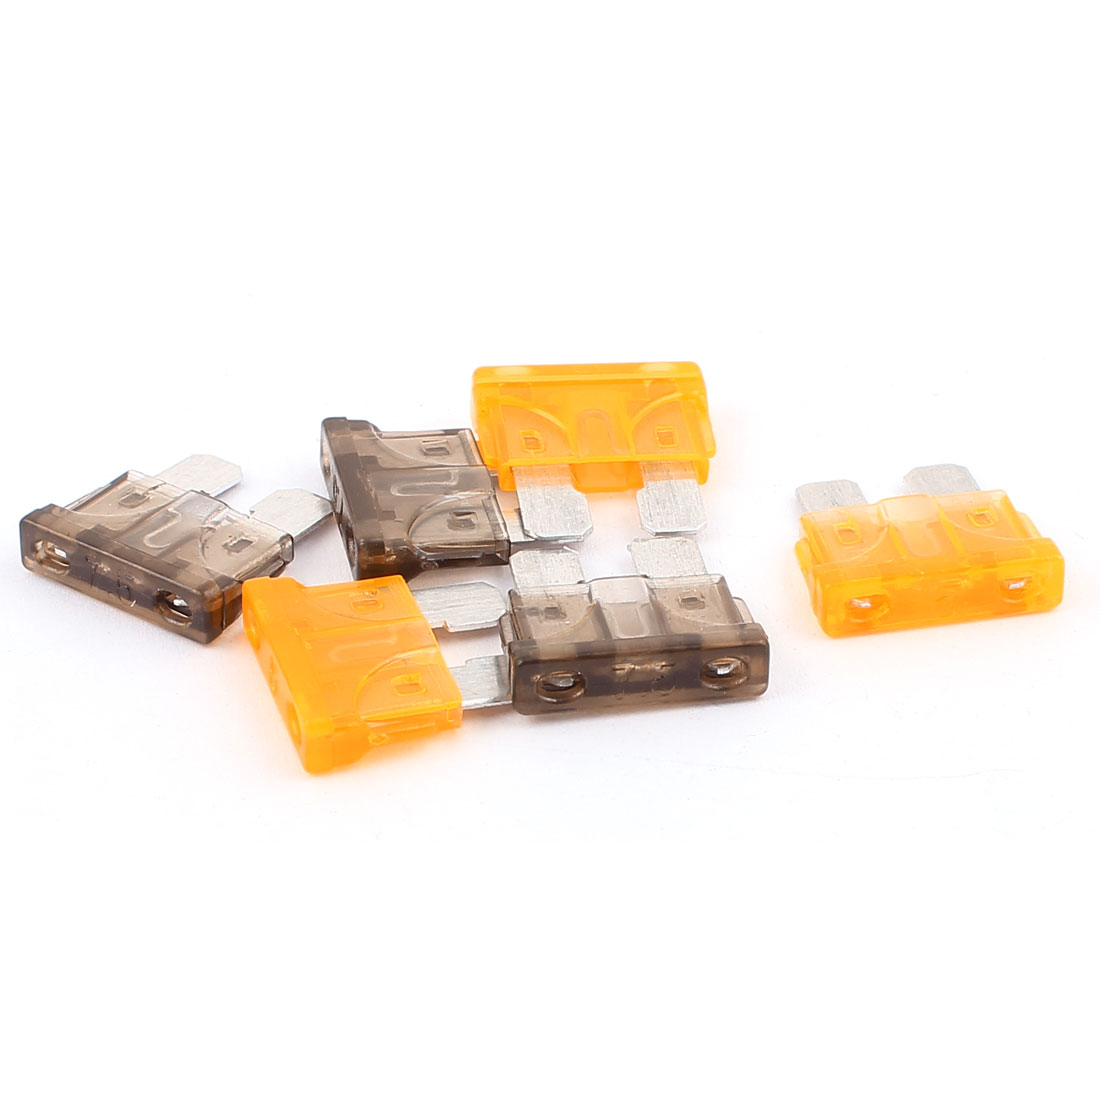 6pcs Orange Gray 7.5A 5A Plastic Shell Mini Blade Fuse for Auto Car Caravan Motorcycle SUV